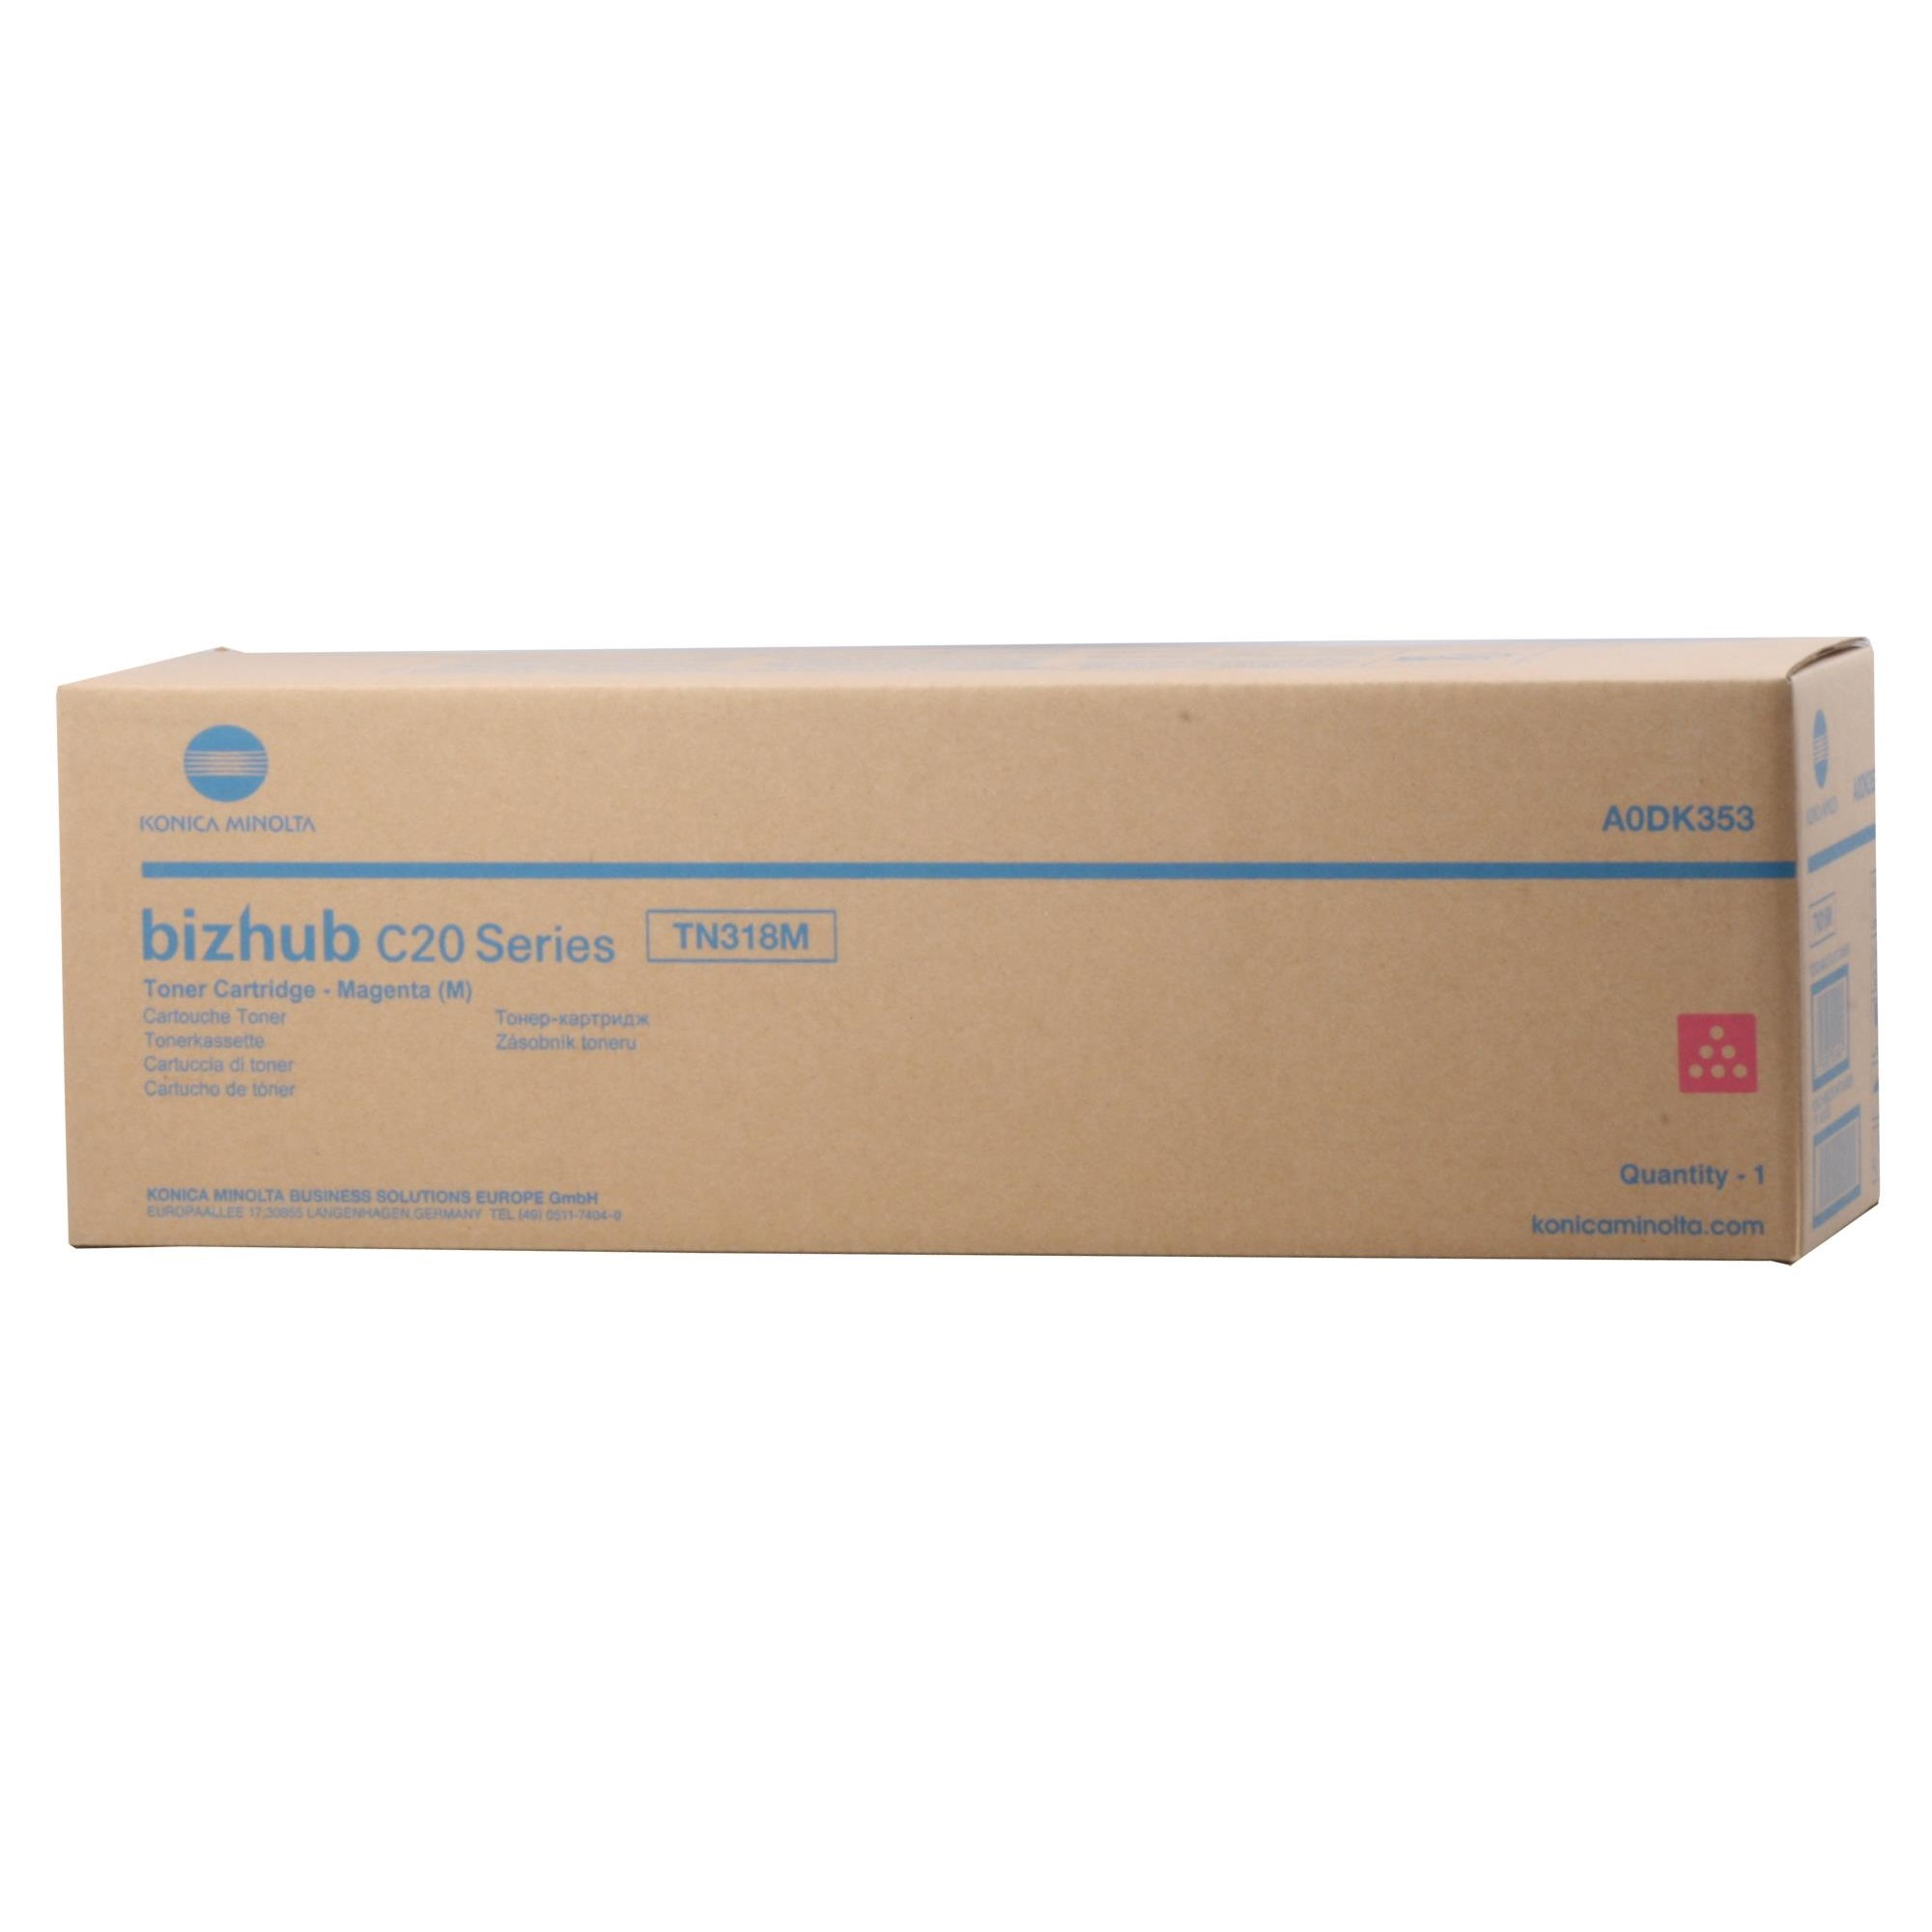 Фото - Тонер Konica-Minolta bizhub C20/C20P (TN-318M/A0DK353) красный тонер konica minolta accurioprint c2060l tn 620k a3vx154 черный